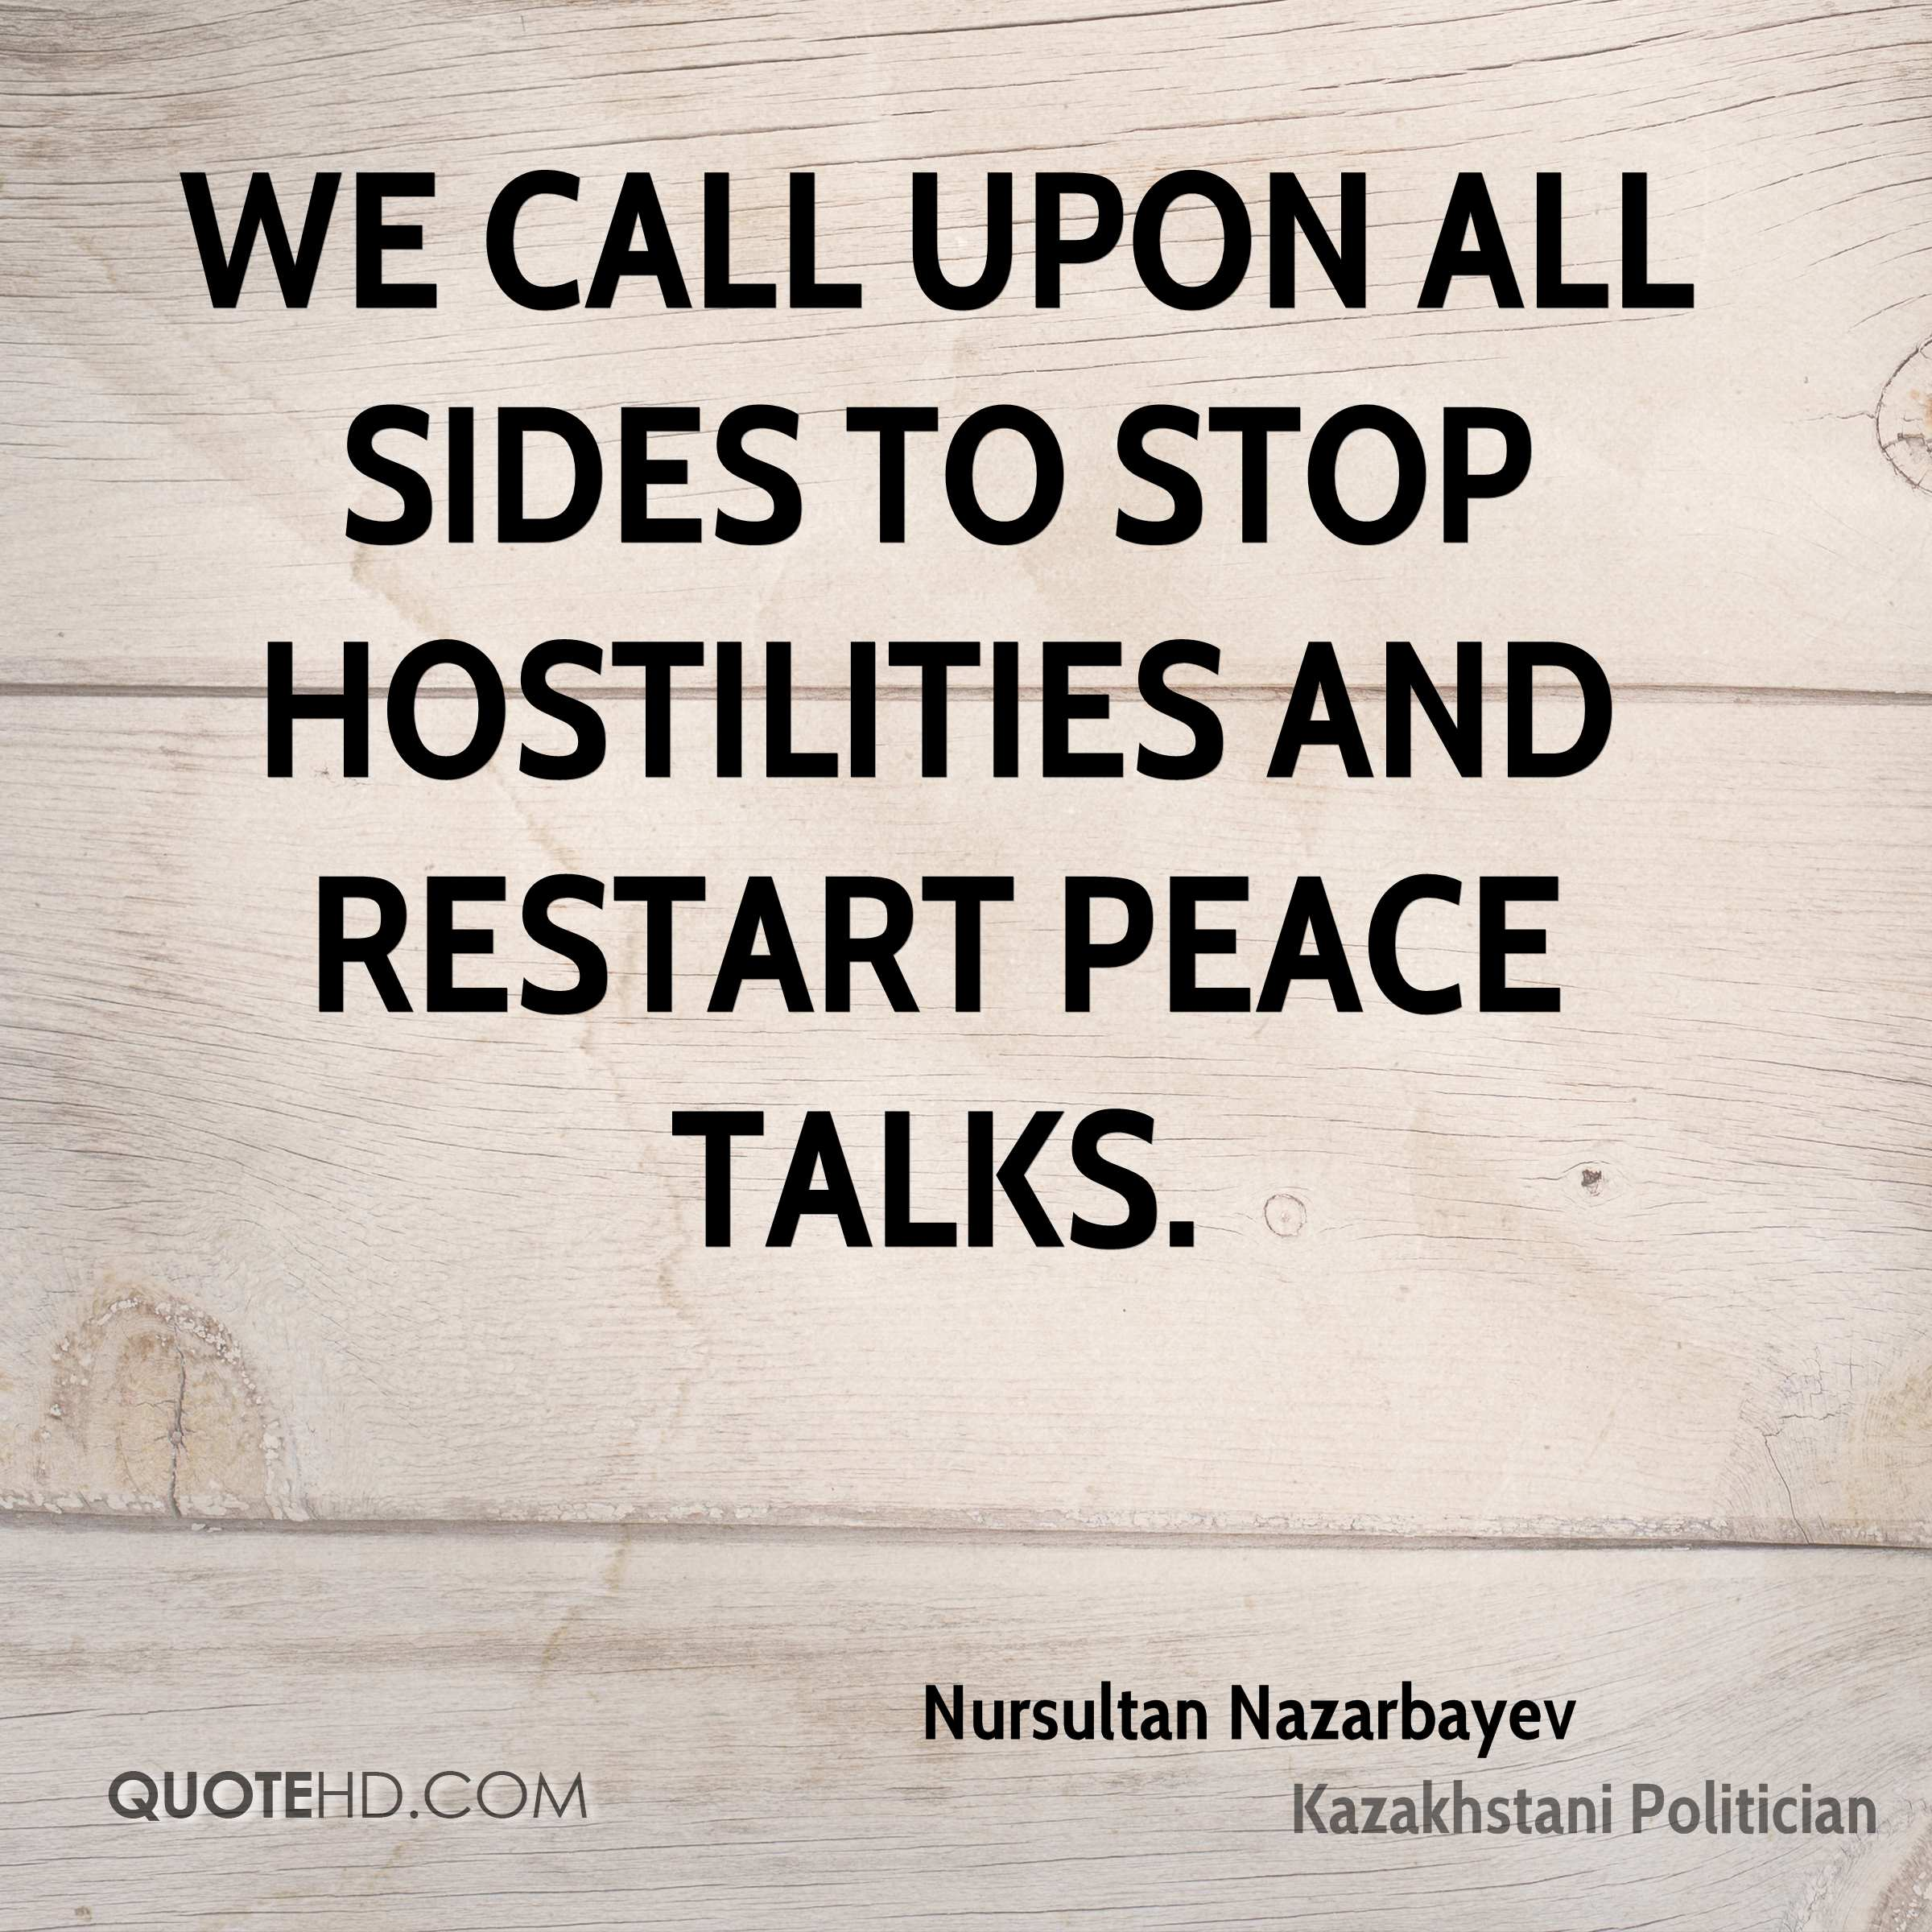 We call upon all sides to stop hostilities and restart peace talks.